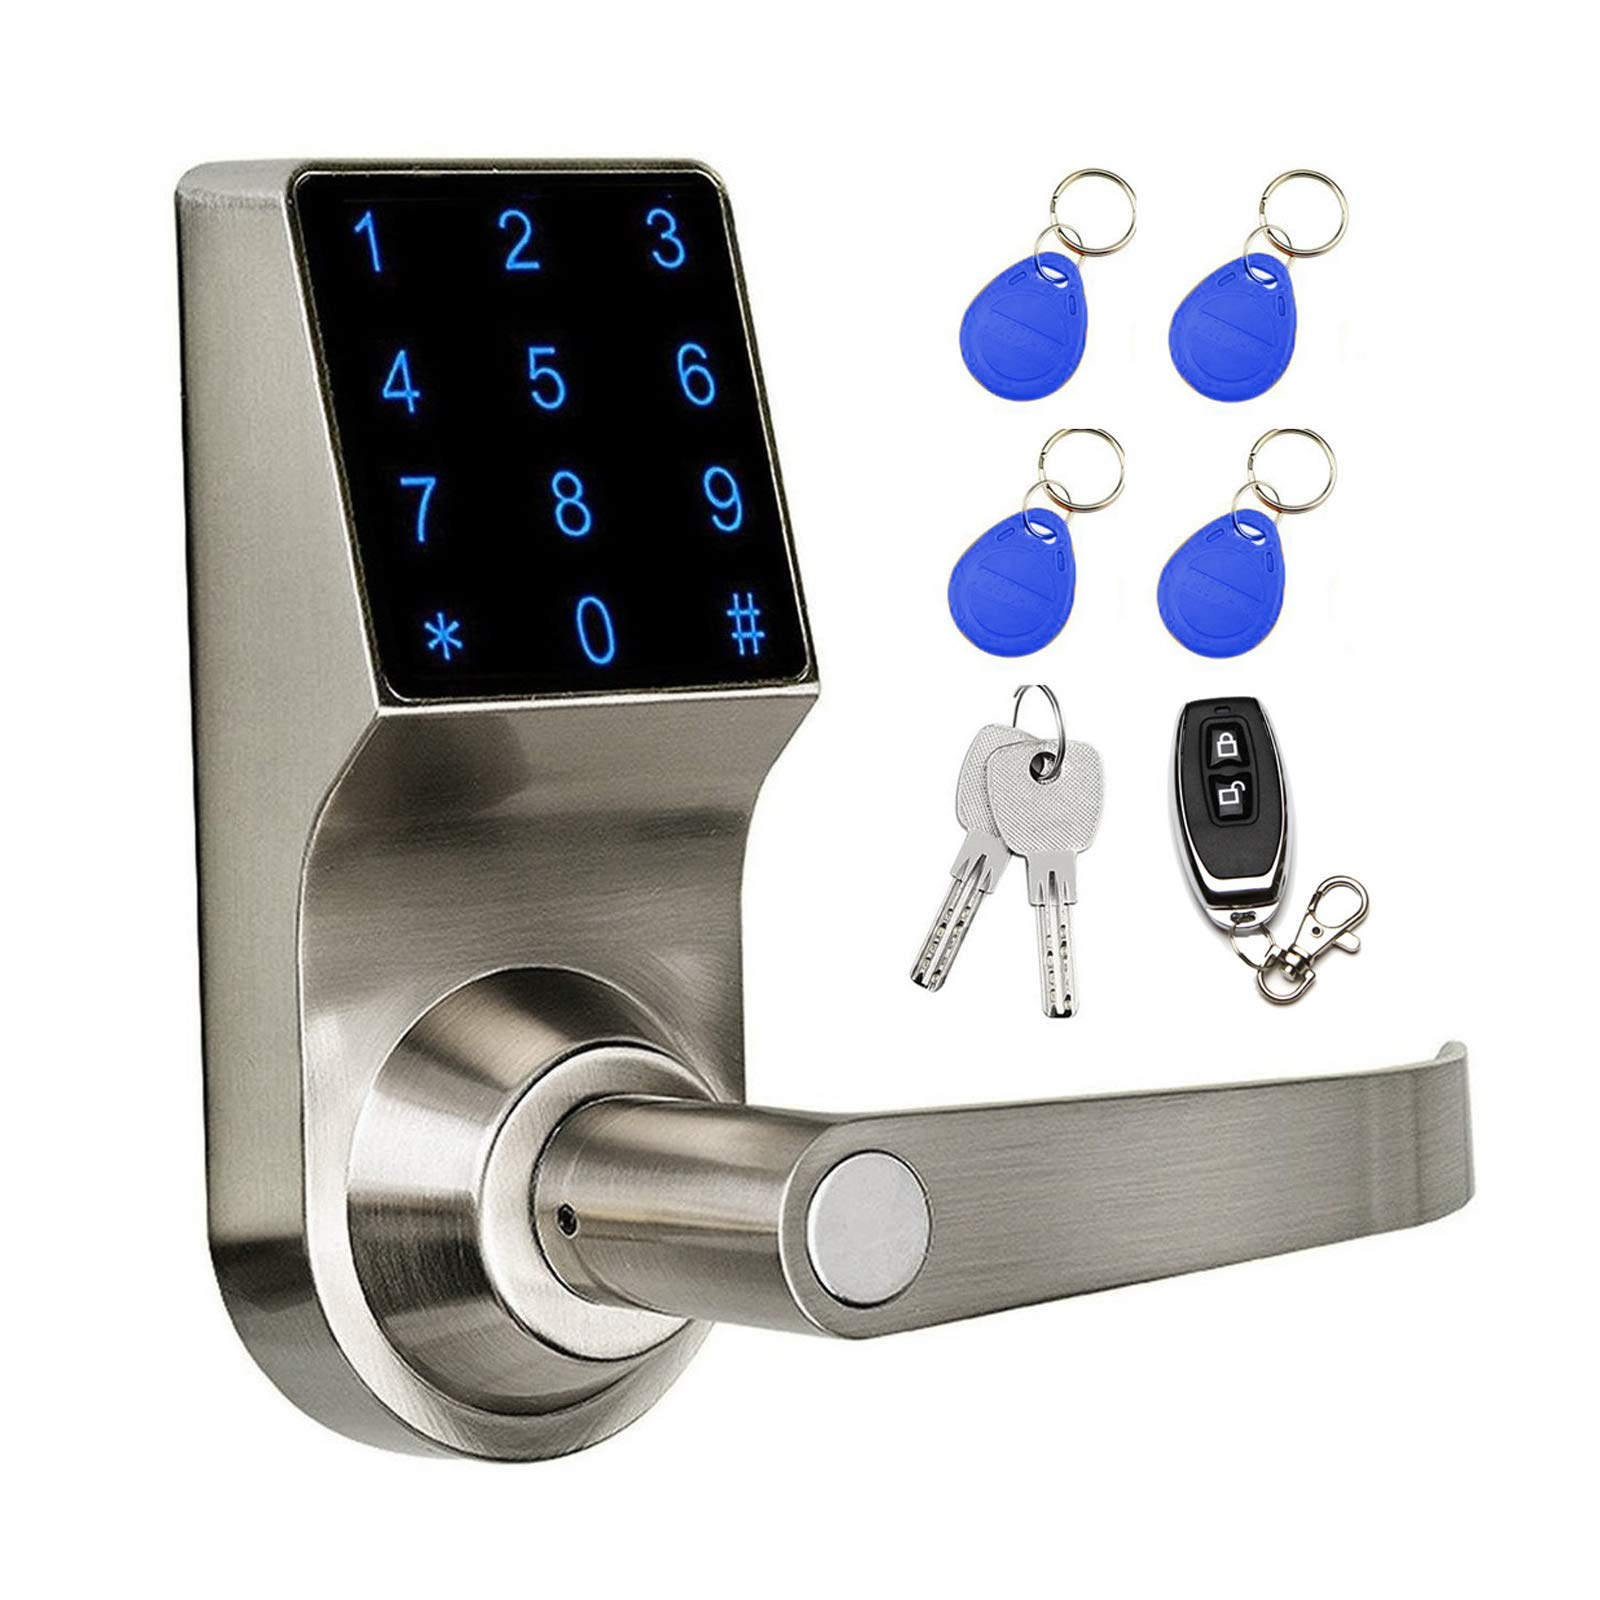 COLOSUS NDL319 Keyless Electronic Digital Smart Door Lock for Home & Office Security, Touchscreen - 50 User Codes + 4 Key Fobs + 1 Remote + 2 Keys (Silver) ...